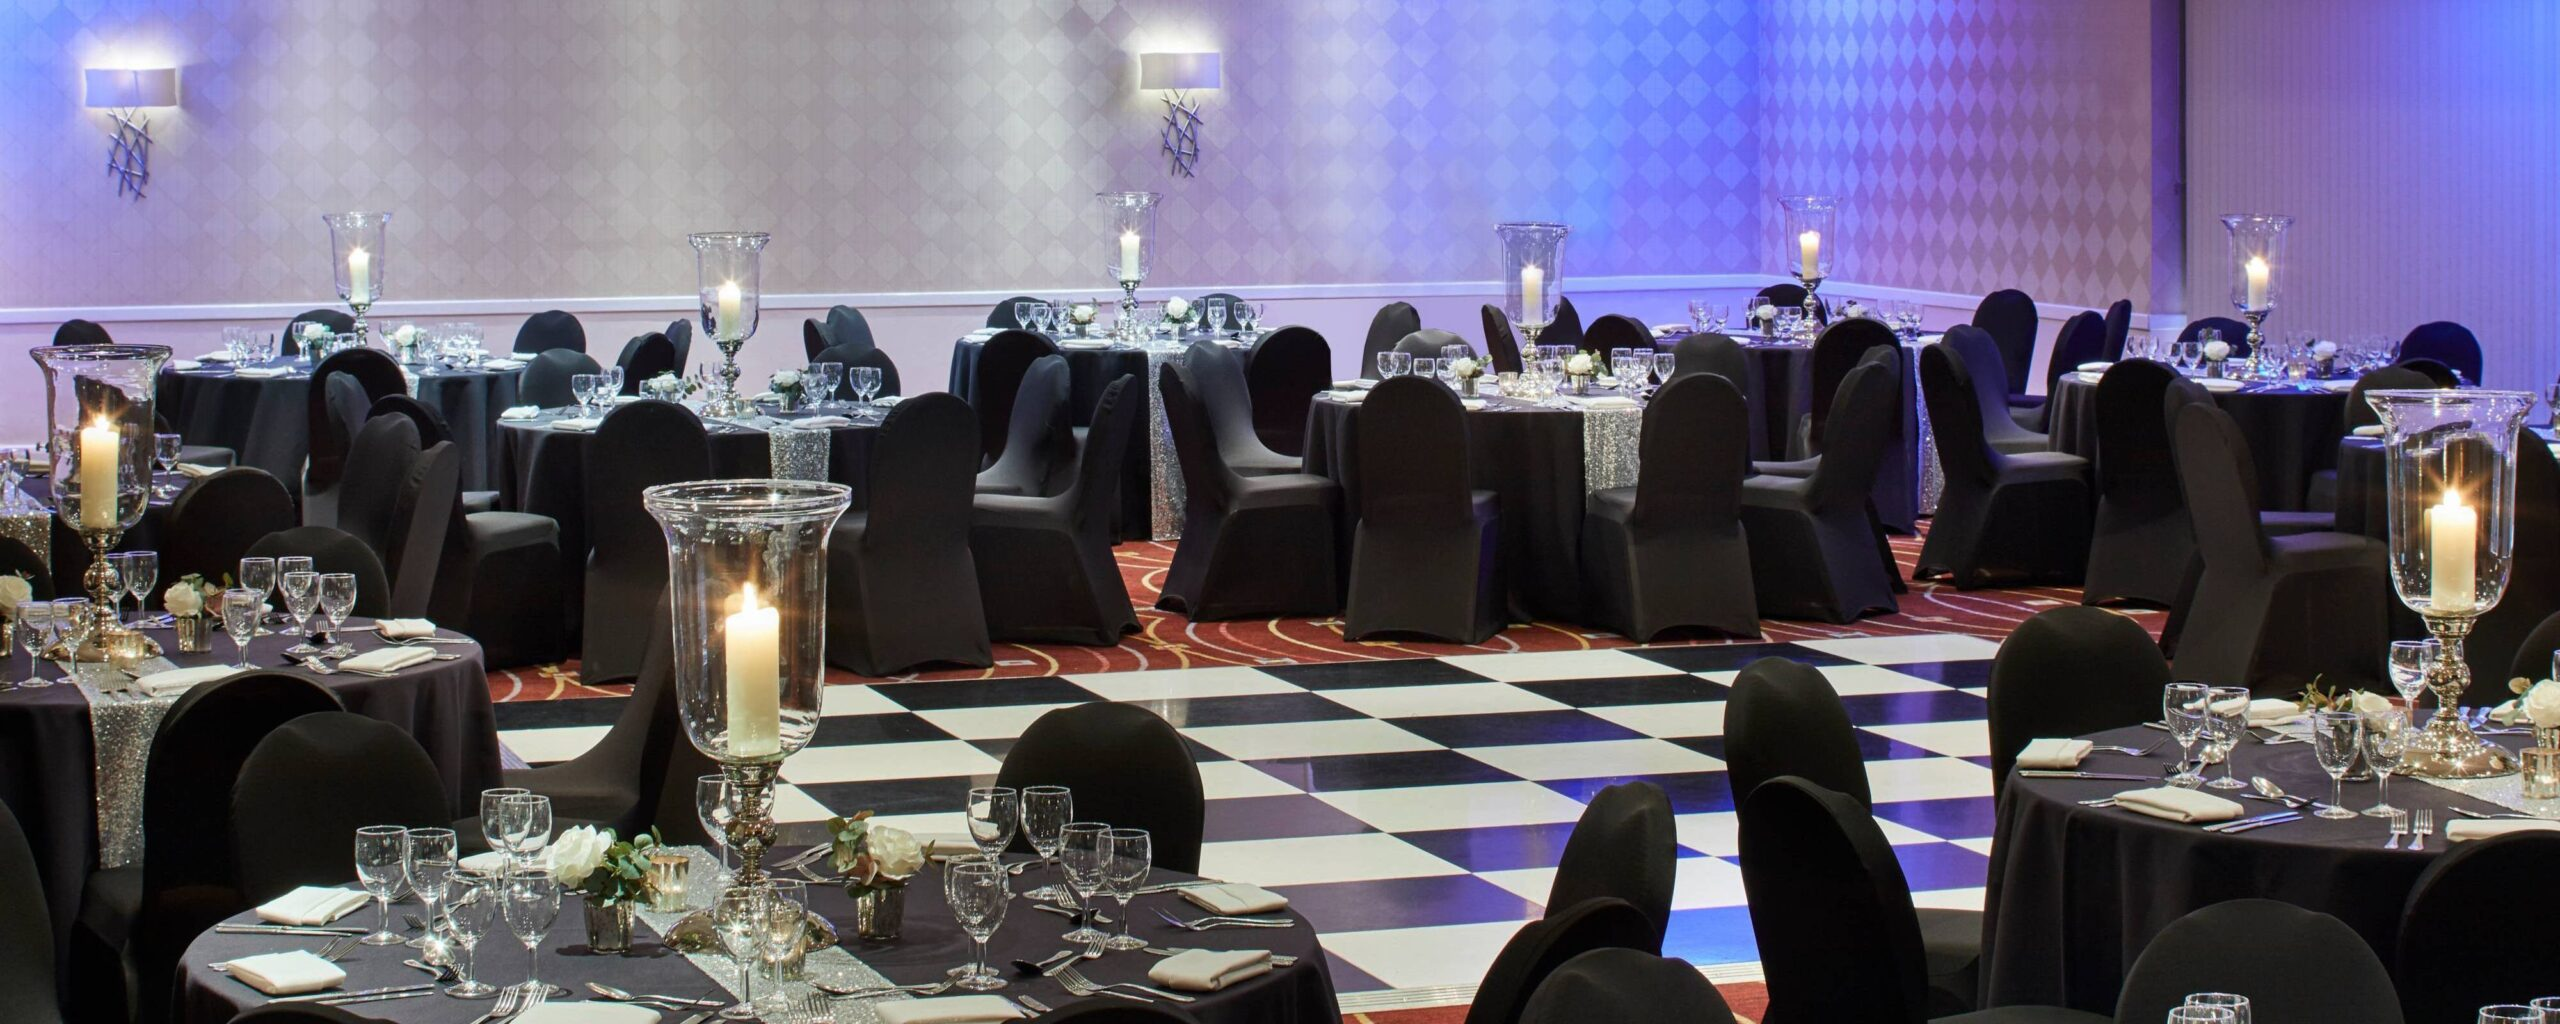 What Are The Benefits Of Function Room For Your Event?